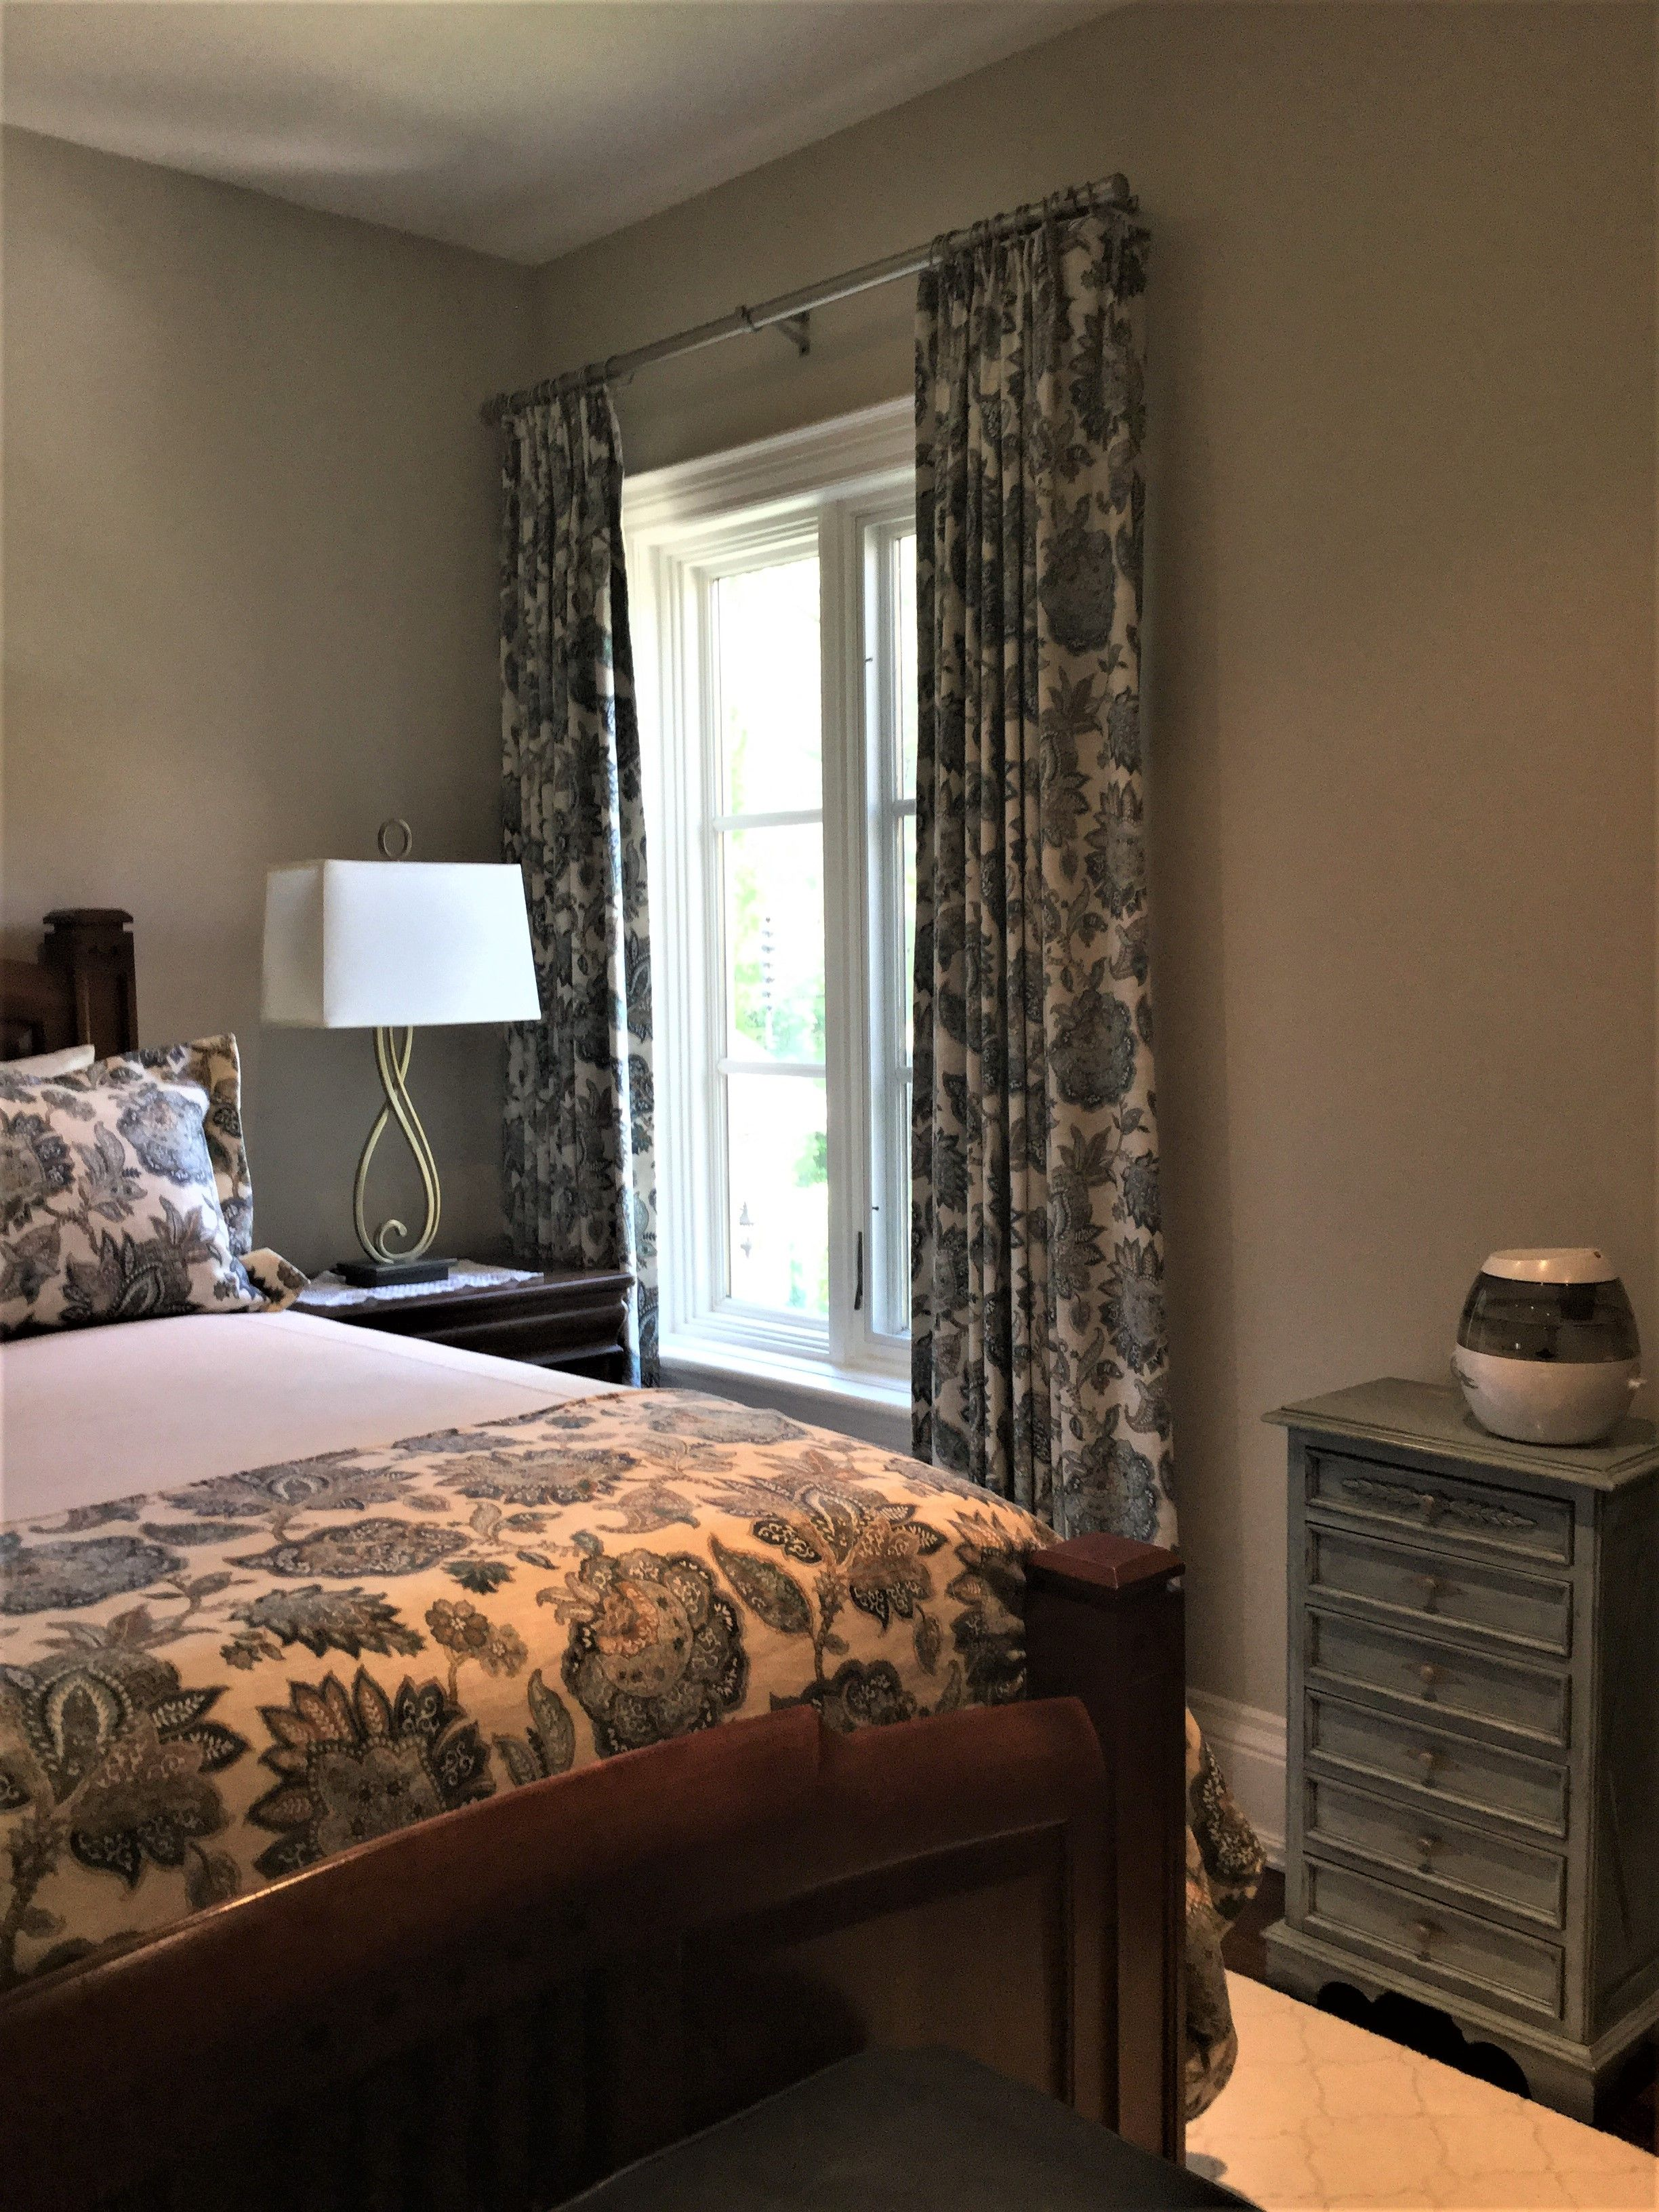 Euro Pleat Drapes With Coordinating Bedding In The Country Home